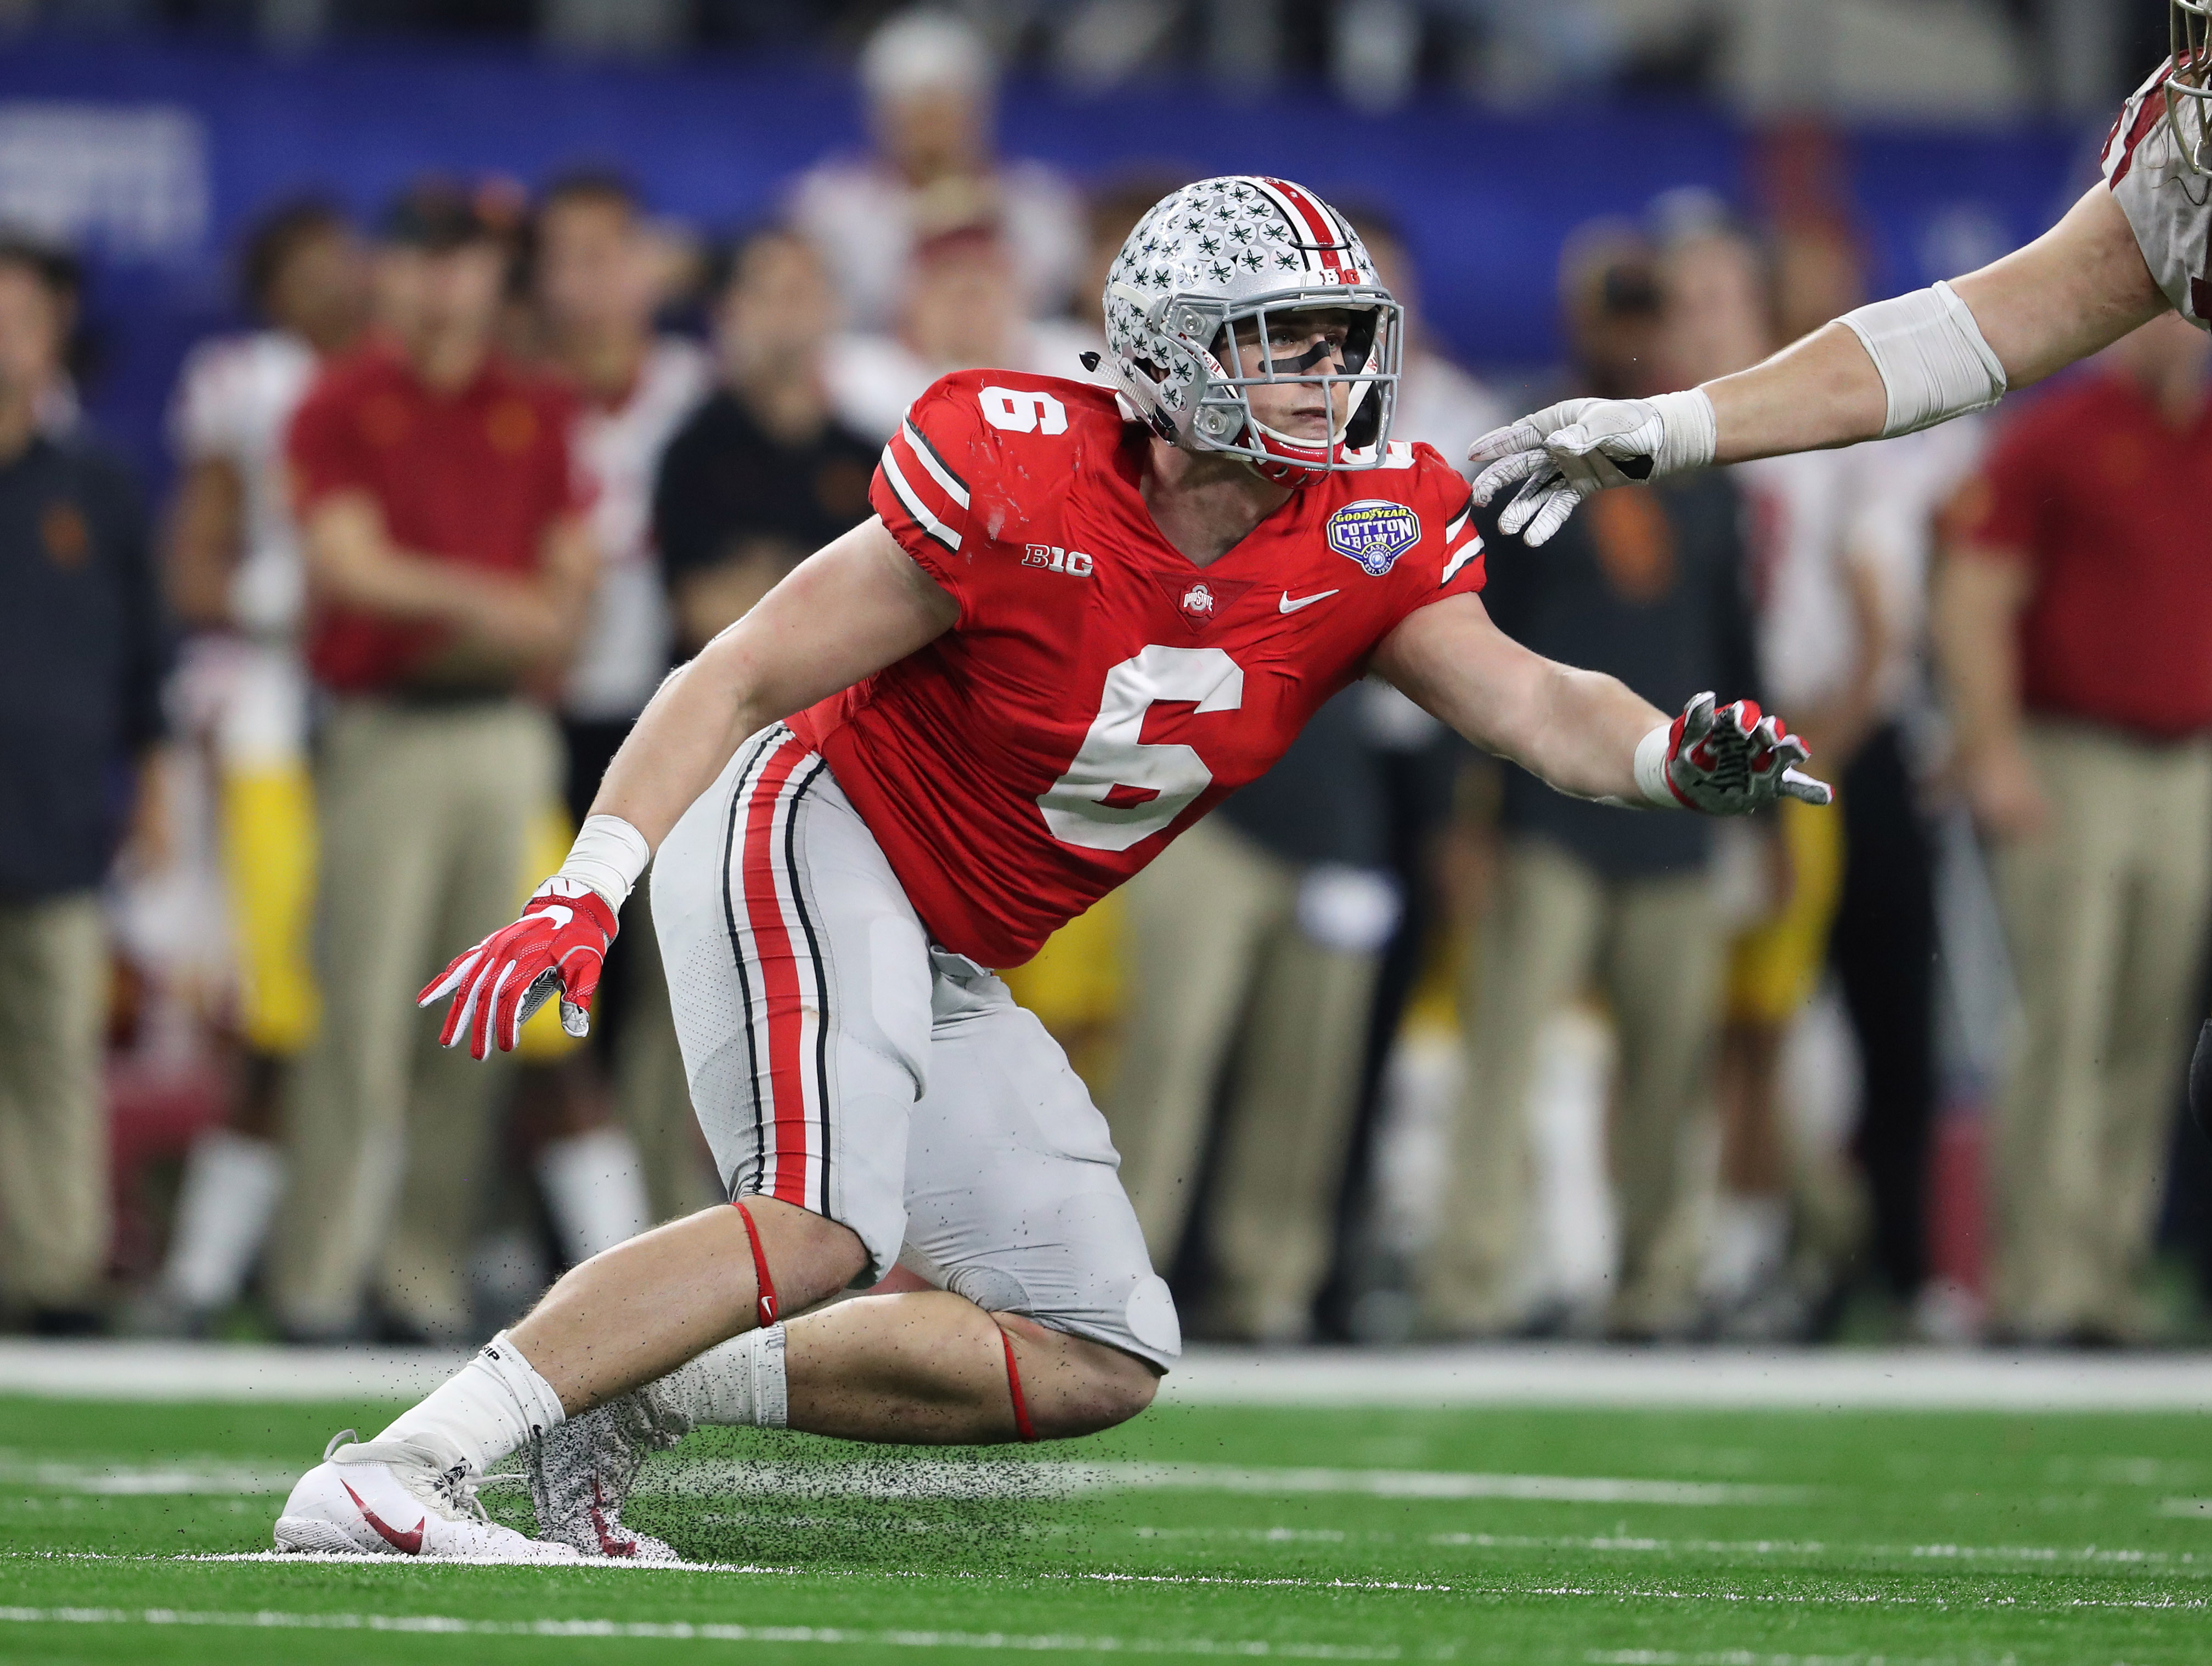 LIVE UPDATES: Edge rushers, interior linemen, linebackers take field at 2018 NFL Scouting Combine